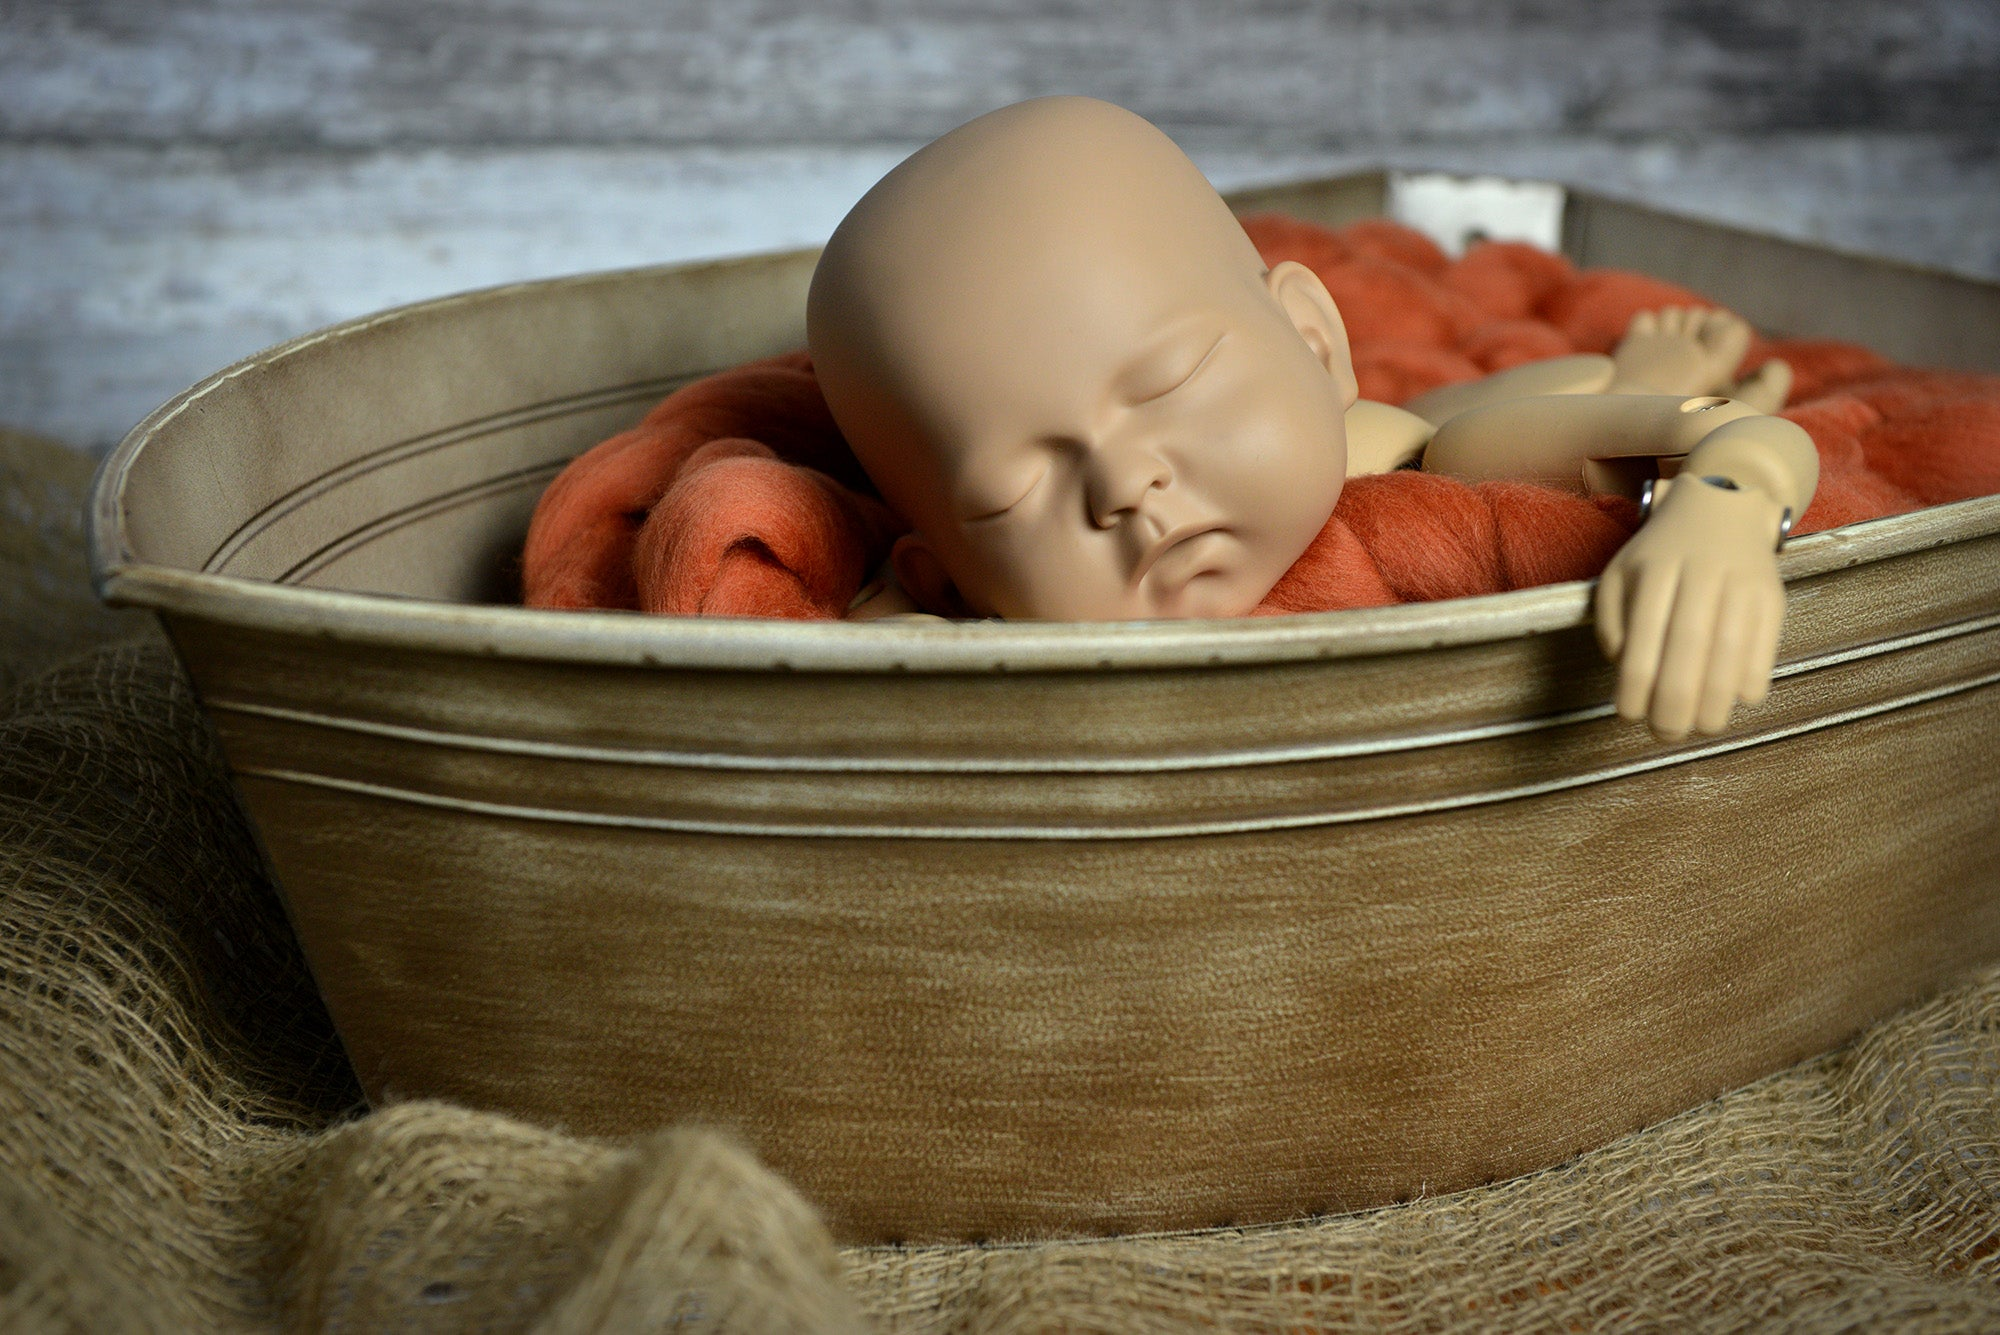 Vintage Boat Bathtub Prop for newborn and baby photography - Newborn ...